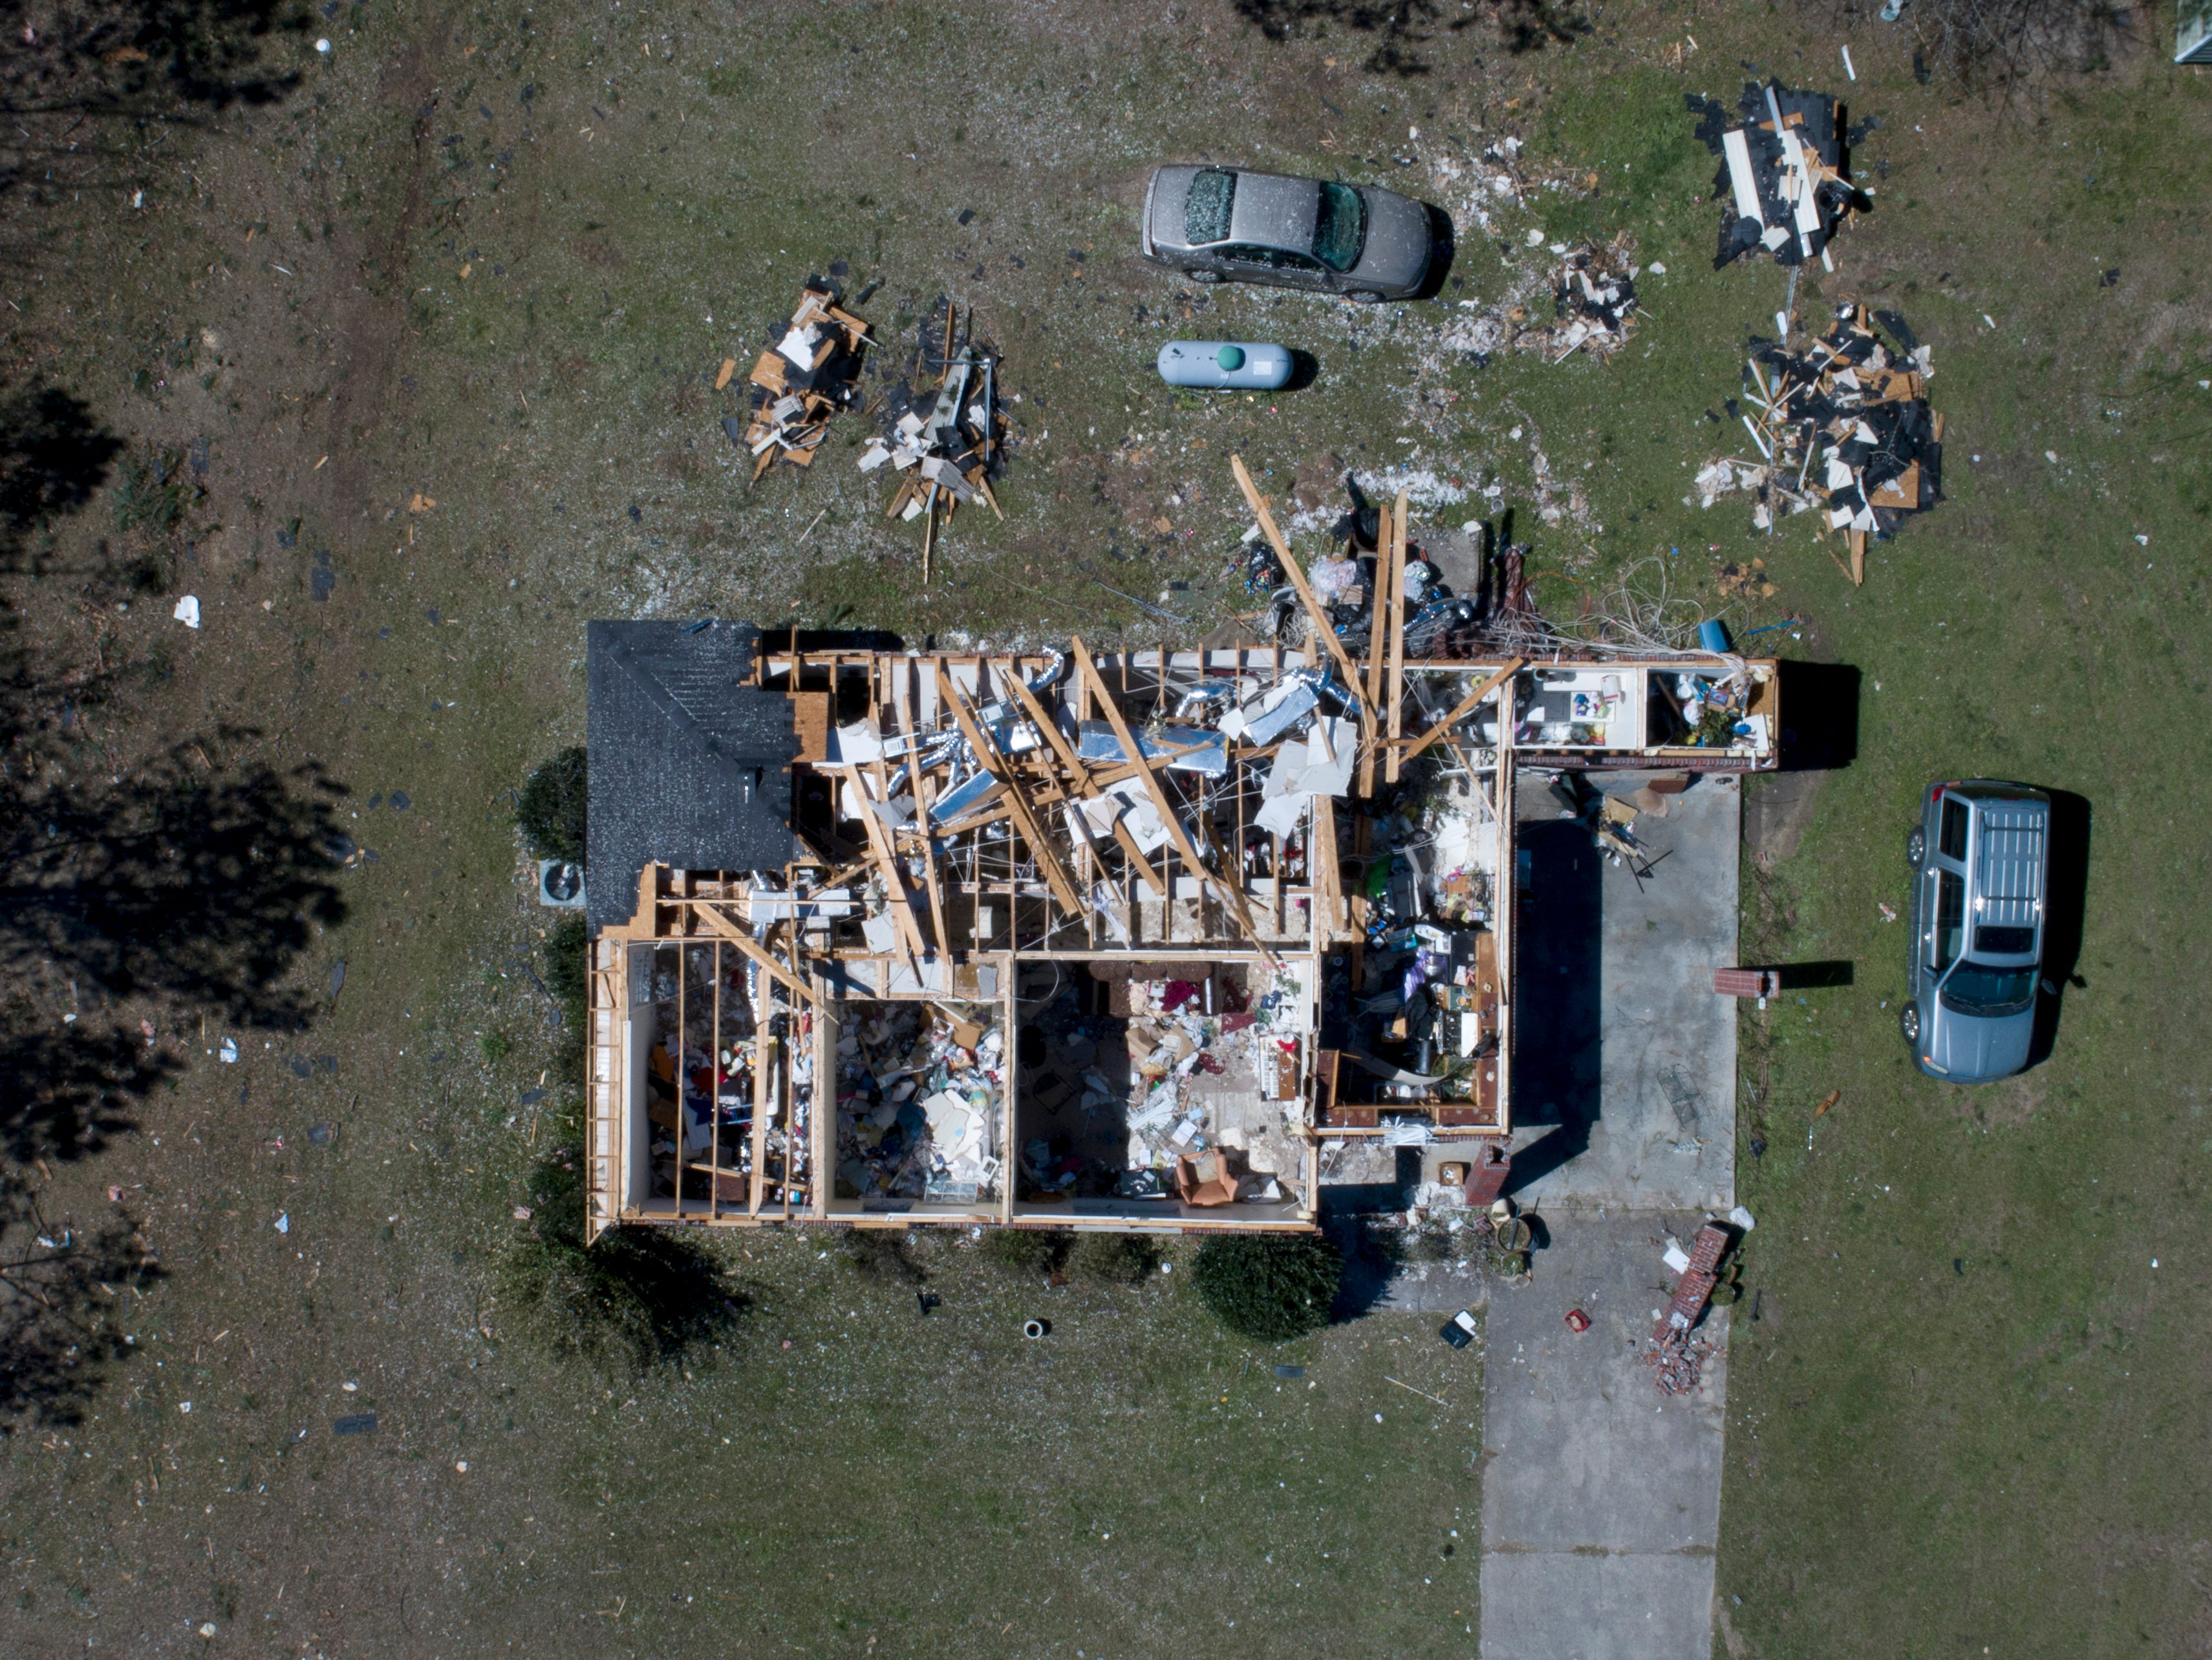 This home along Route 165 in Beauregard, Ala. was heavily damaged during the tornadoes on Sunday March, 3, 2019. This image was taken with a drone March 5, 2019.